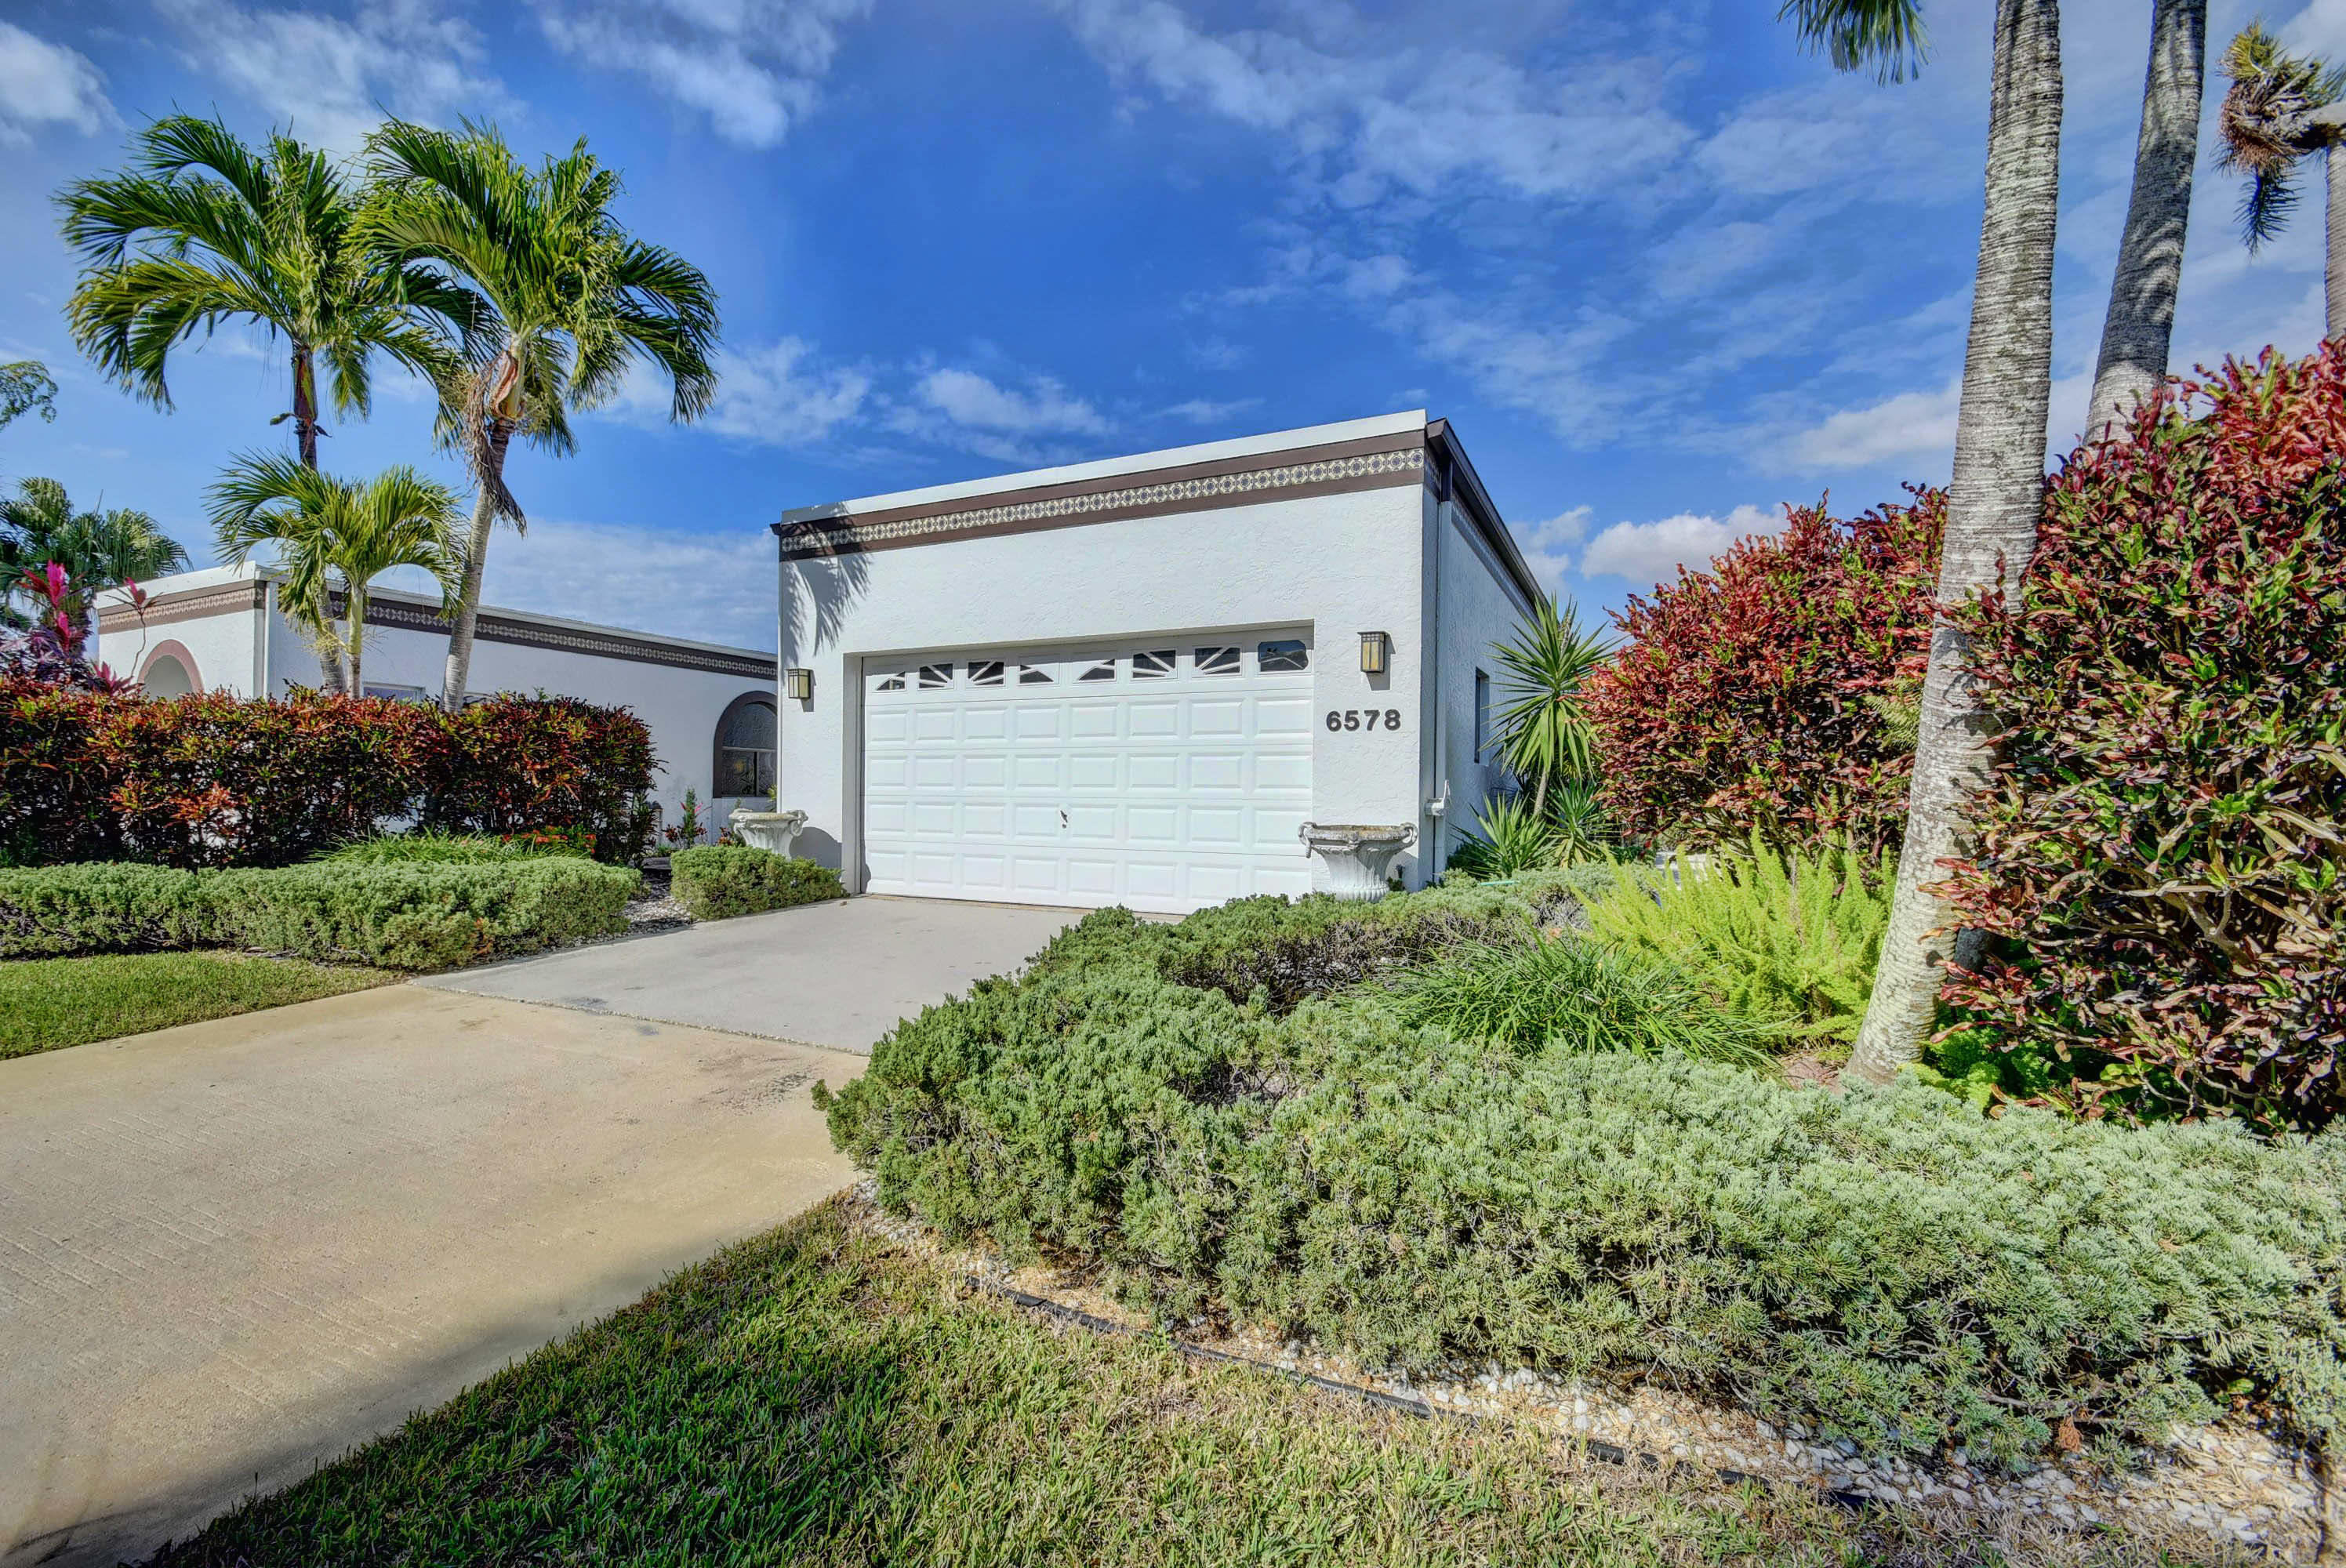 6578 Fountains Circle, Lake Worth, Florida 33467, 3 Bedrooms Bedrooms, ,2 BathroomsBathrooms,Single Family,For Sale,FOUNTAINS,Fountains,1,RX-10496606